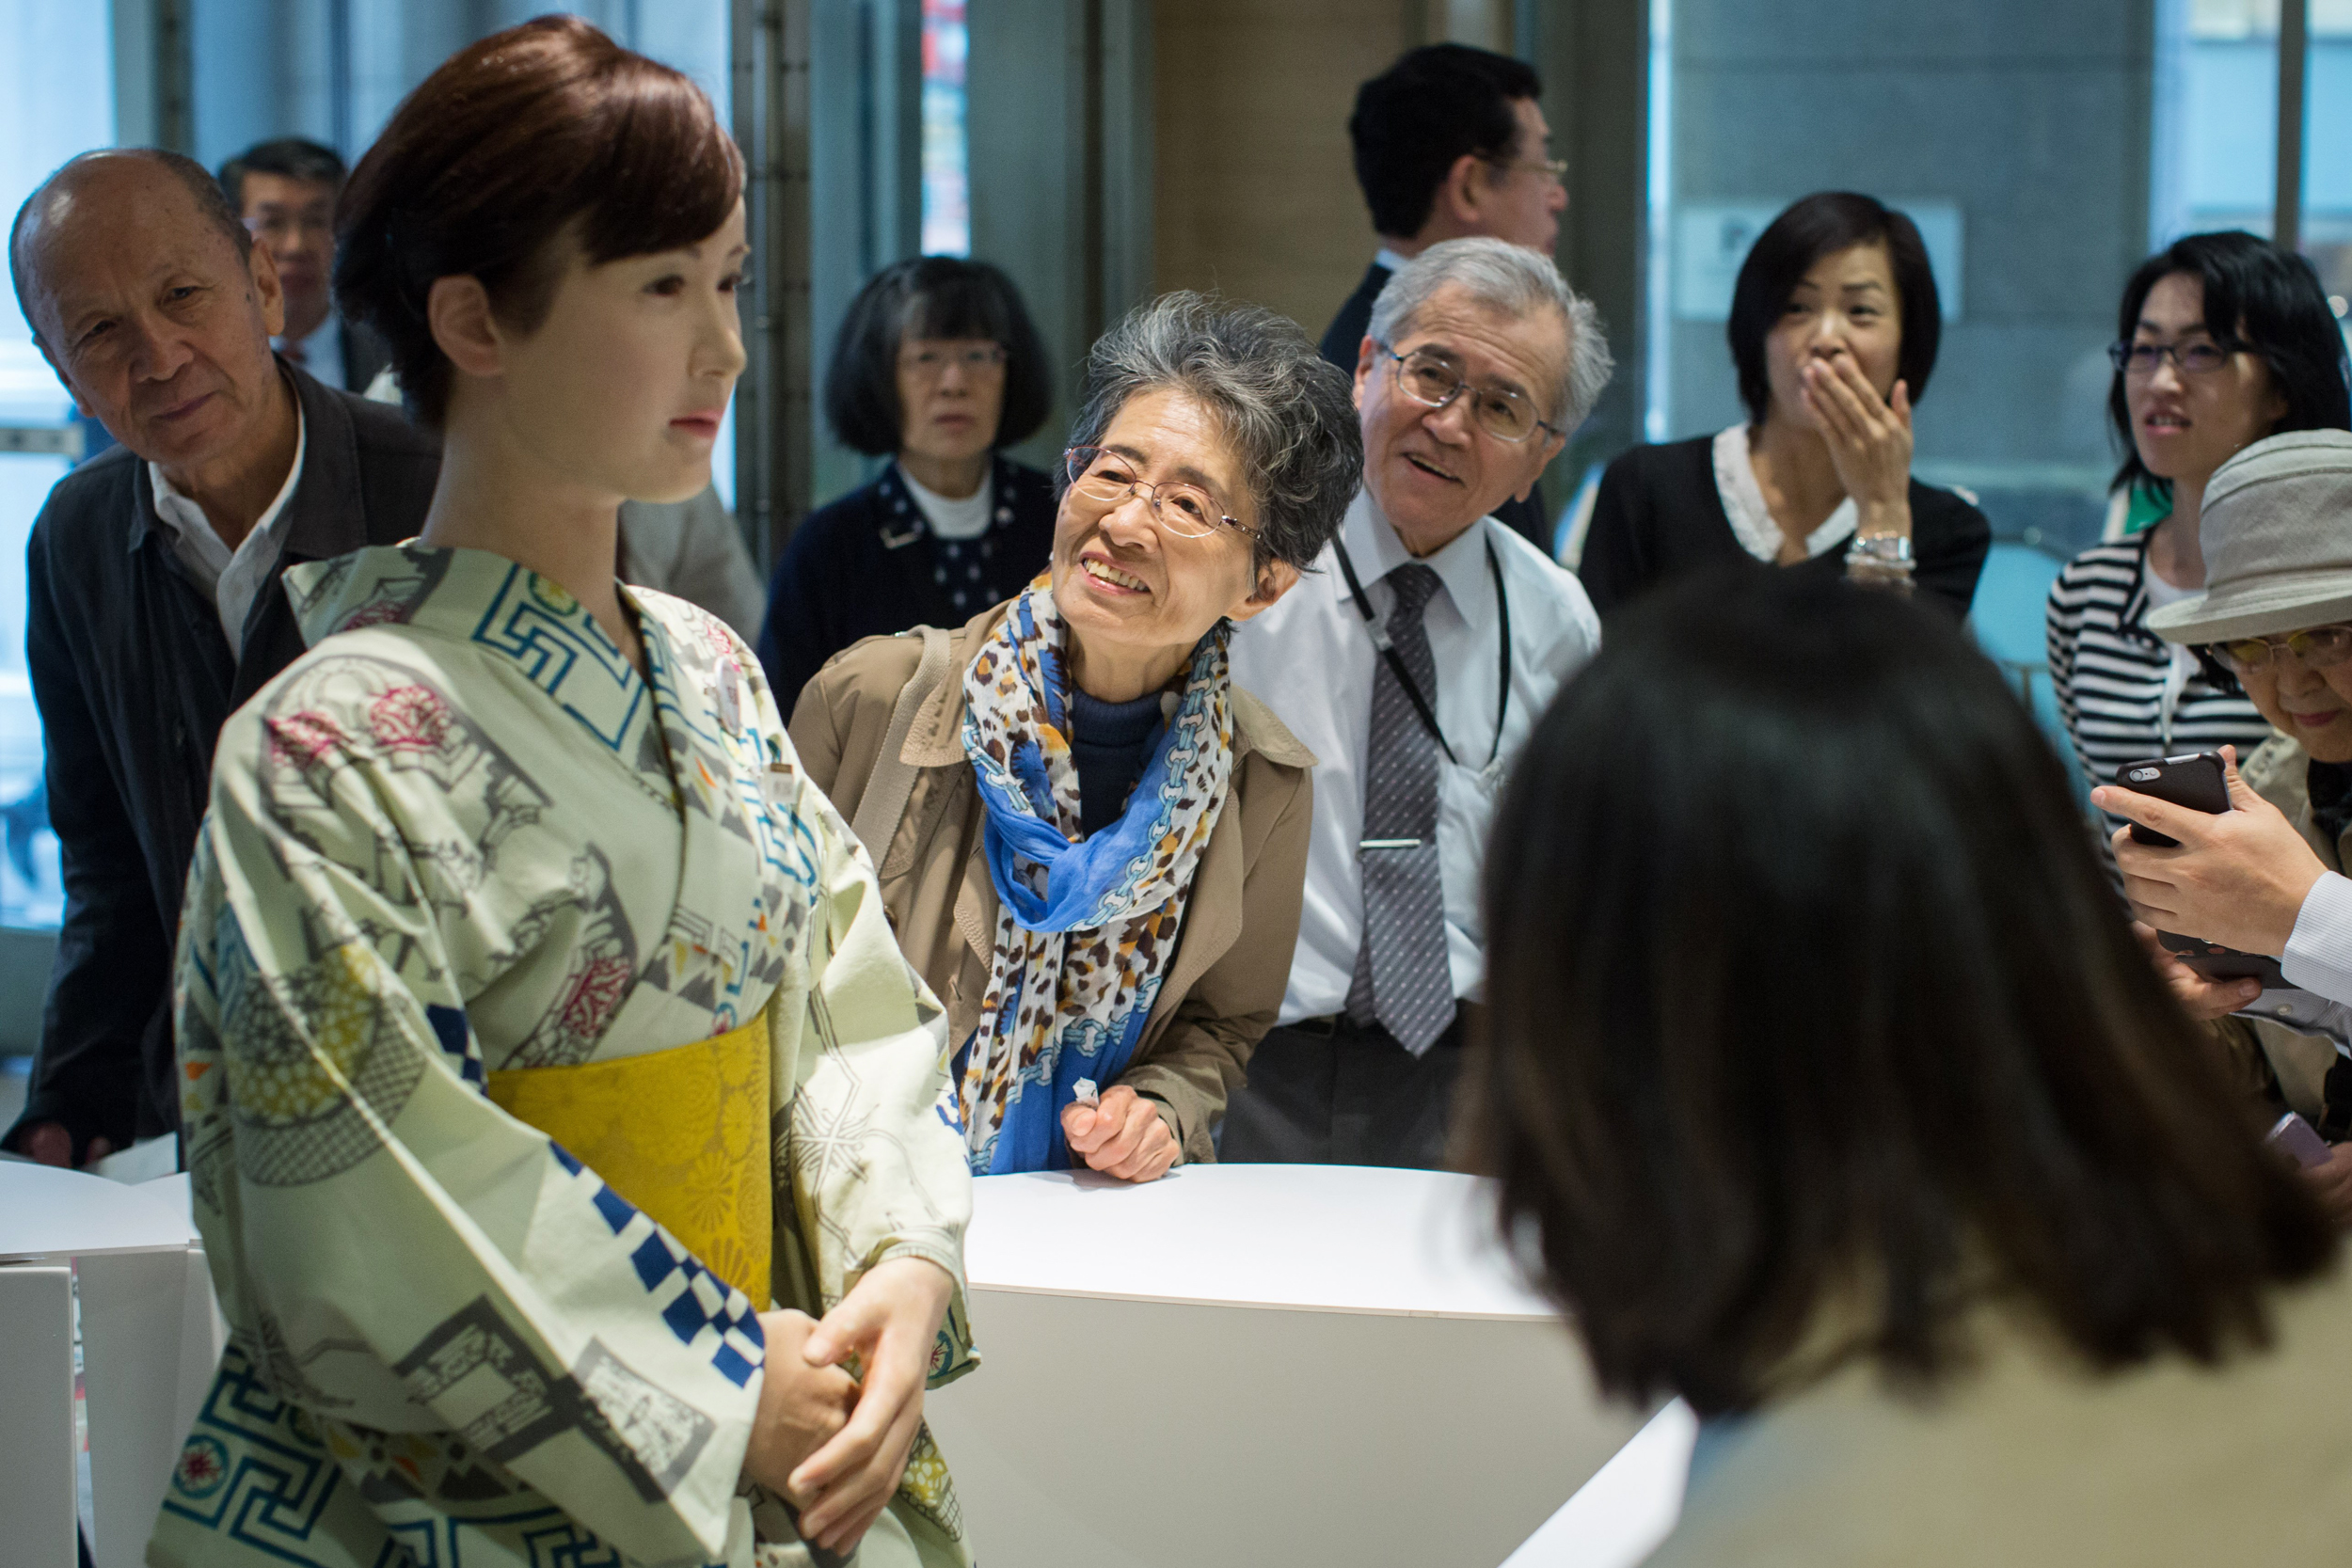 Shoppers view and take photographs of humanoid robot aiko chihira